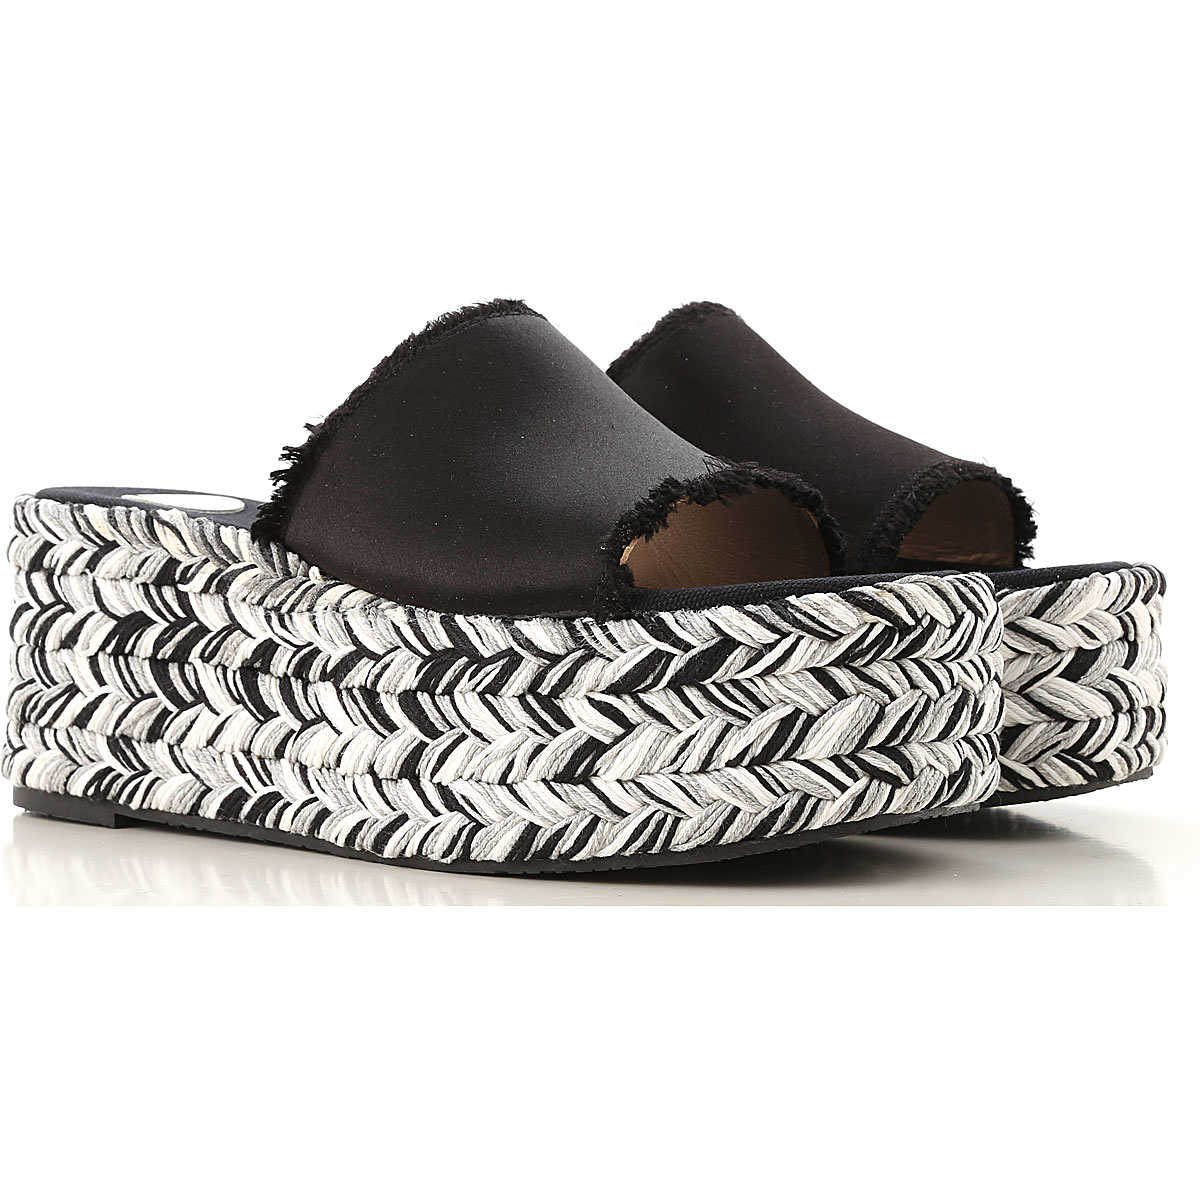 Ras Wedges for Women On Sale Black DK - GOOFASH - Womens HOUSE SHOES